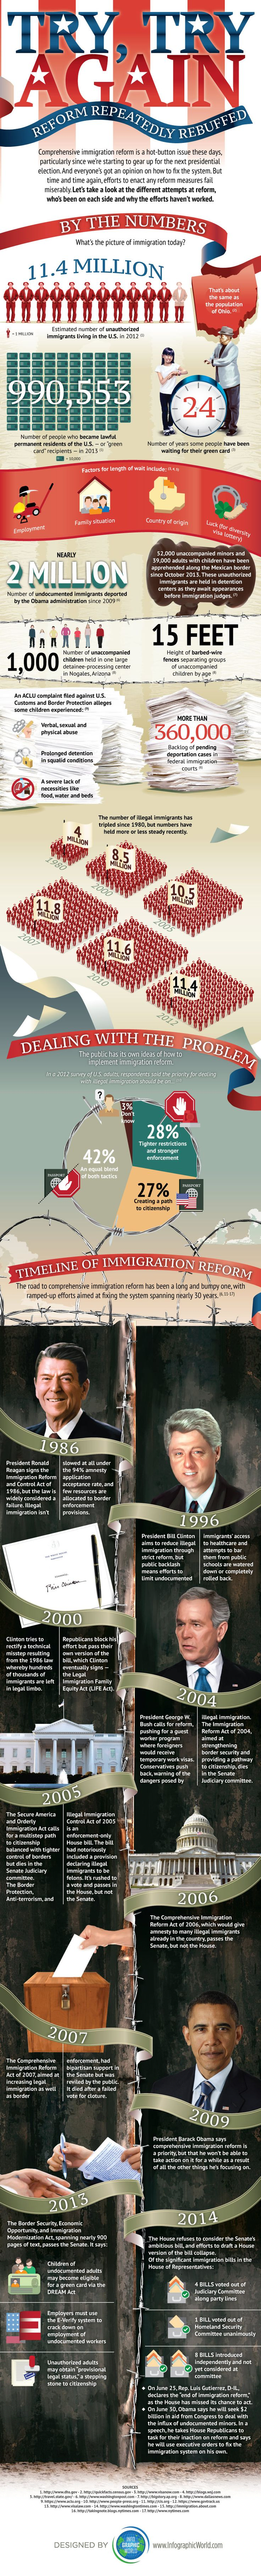 17 best images about immigration chicano time useful infographic on immigration reform larry ferlazzo s websites of the day